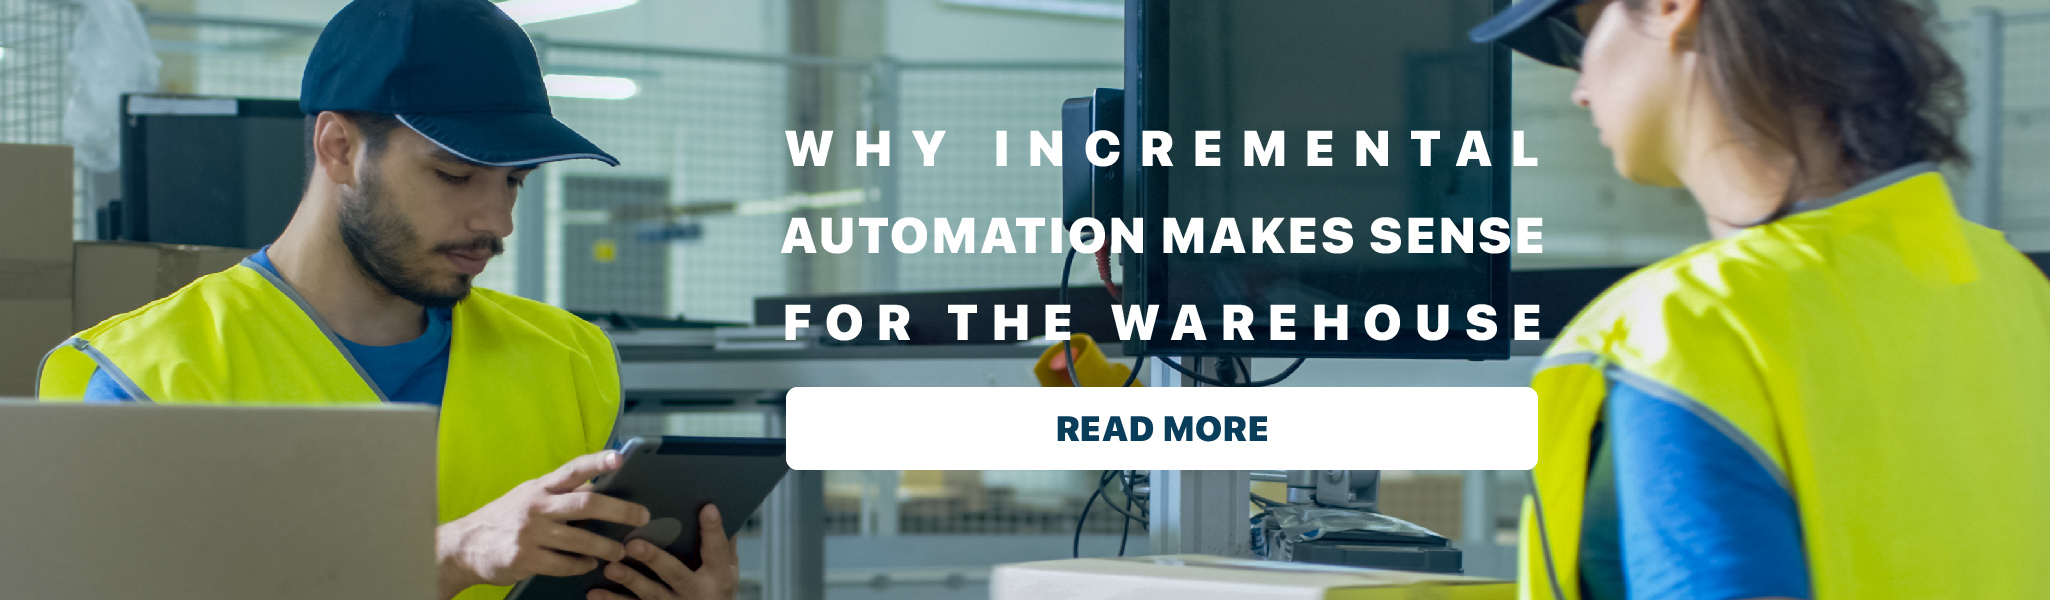 Why Incremental Automation Makes Sense for the Warehouse | Read More